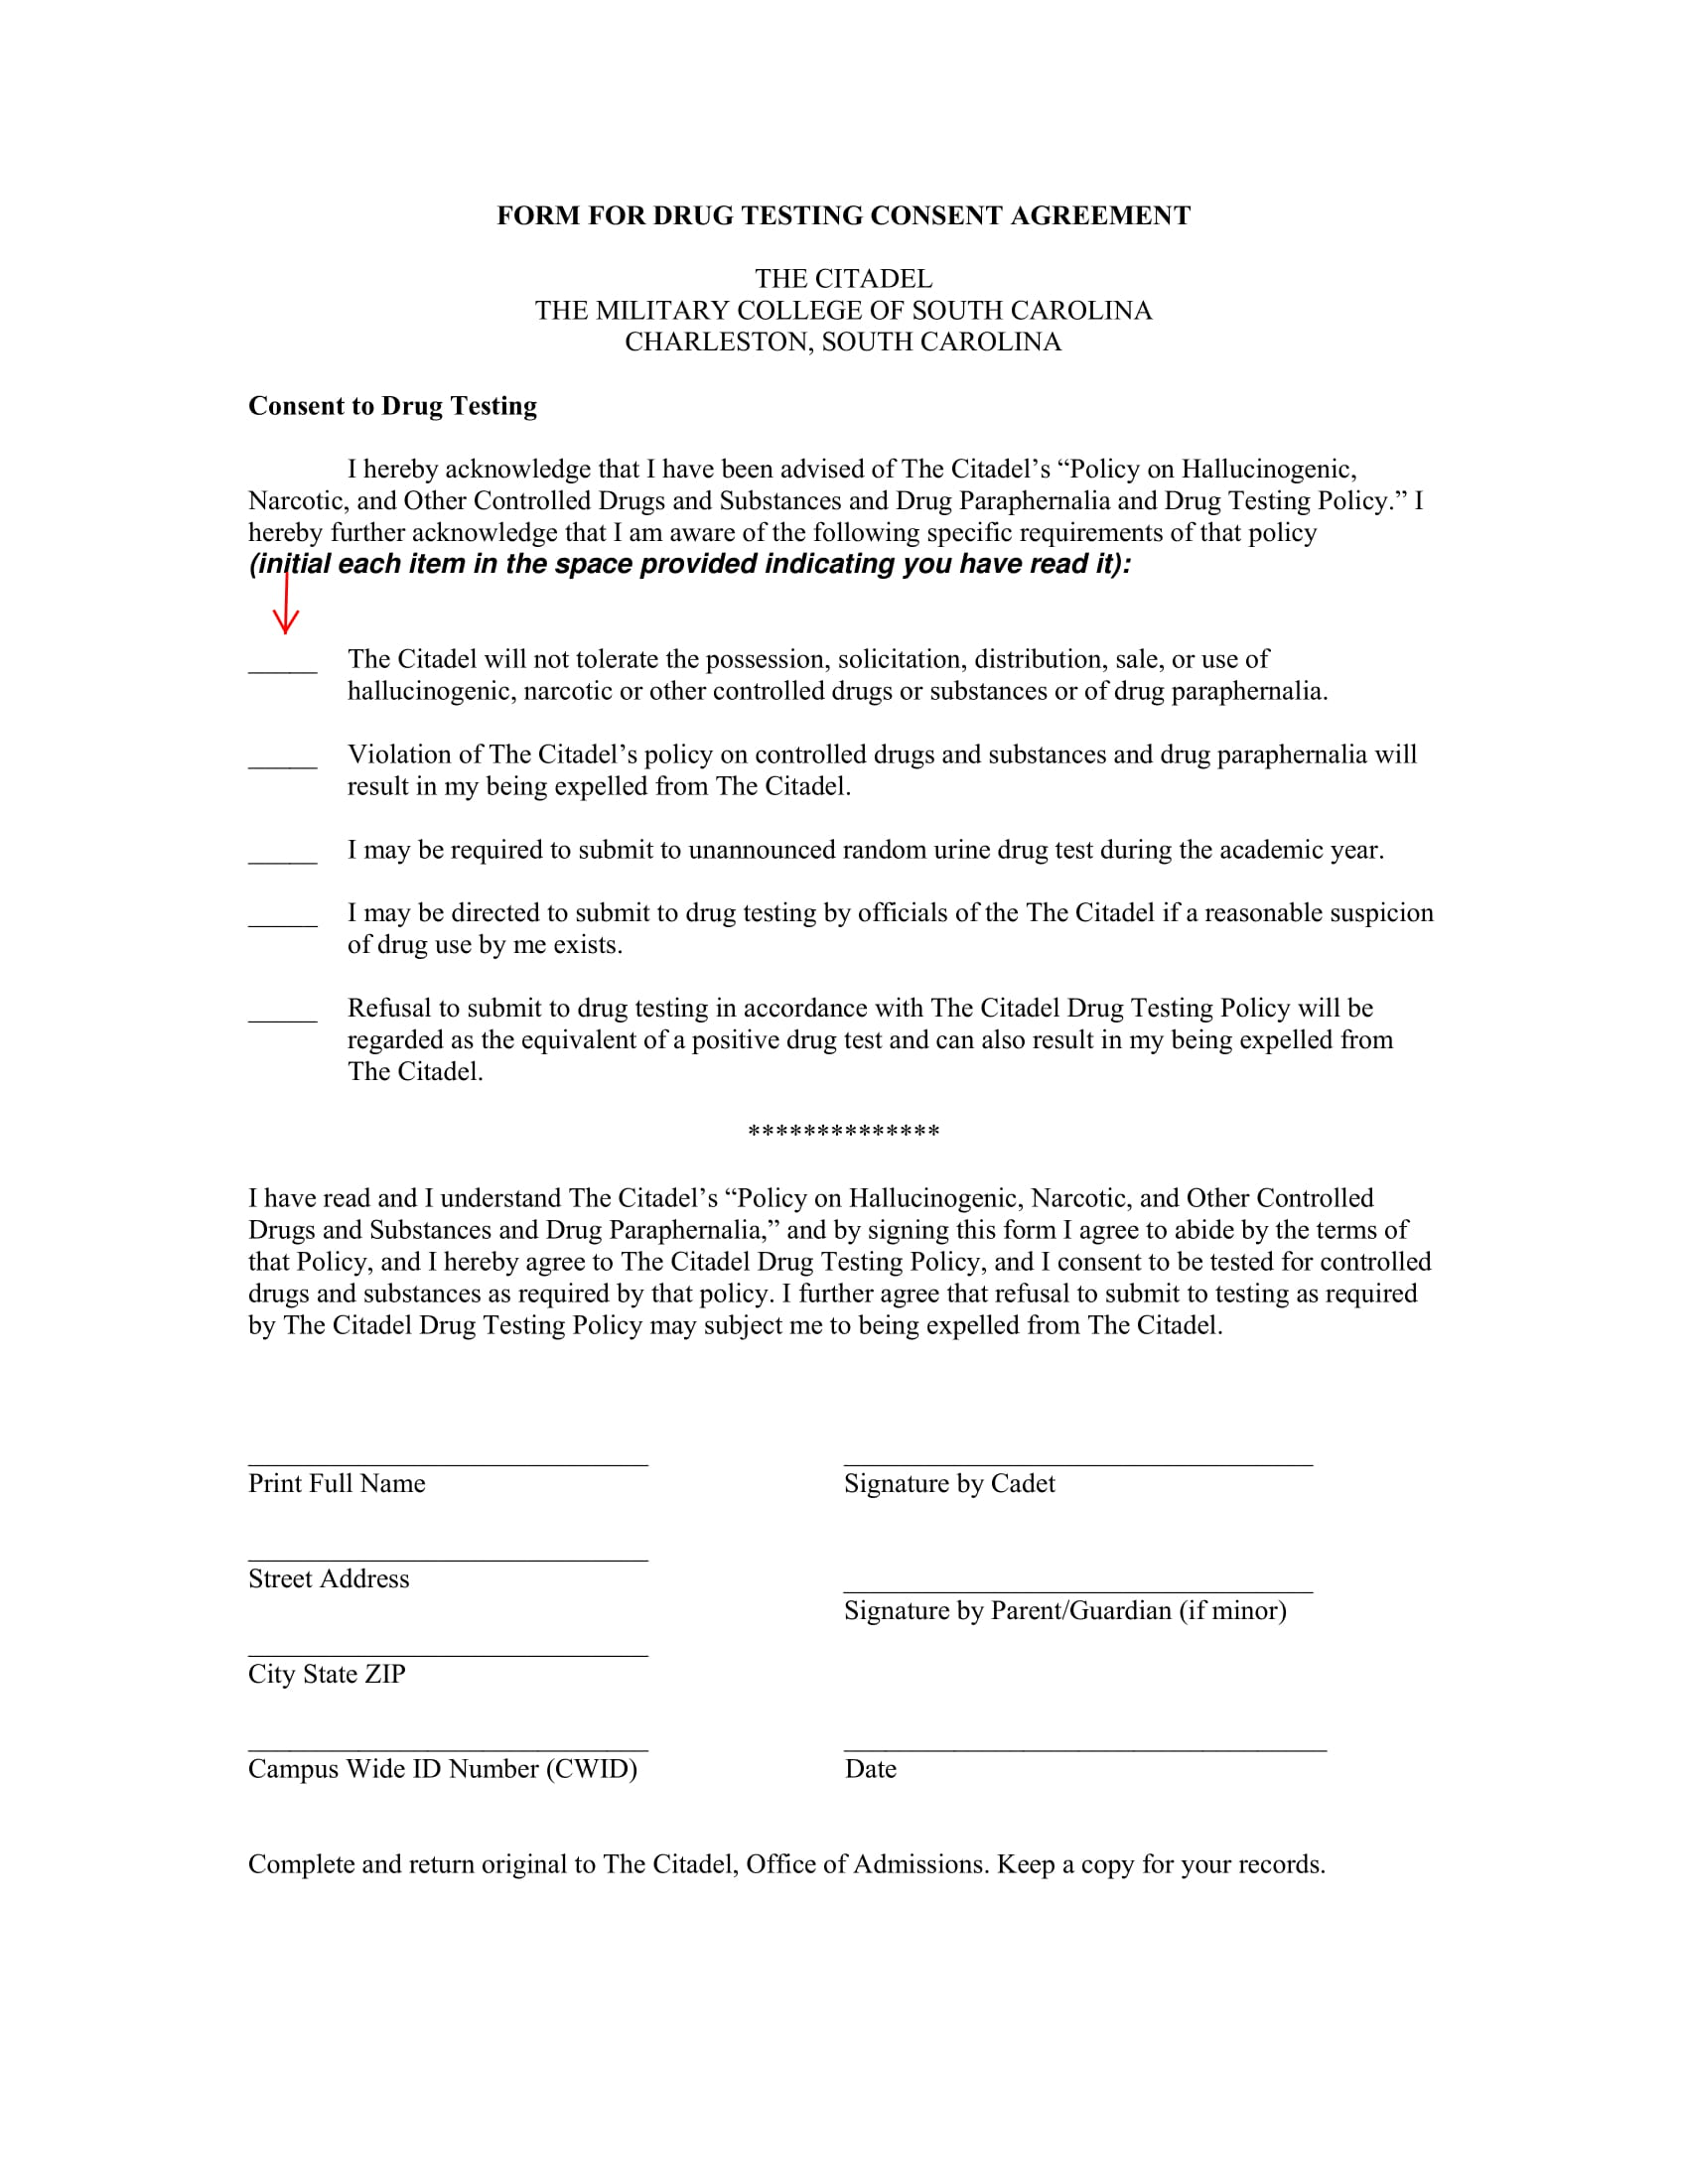 drug testing consent agreement contract form 1